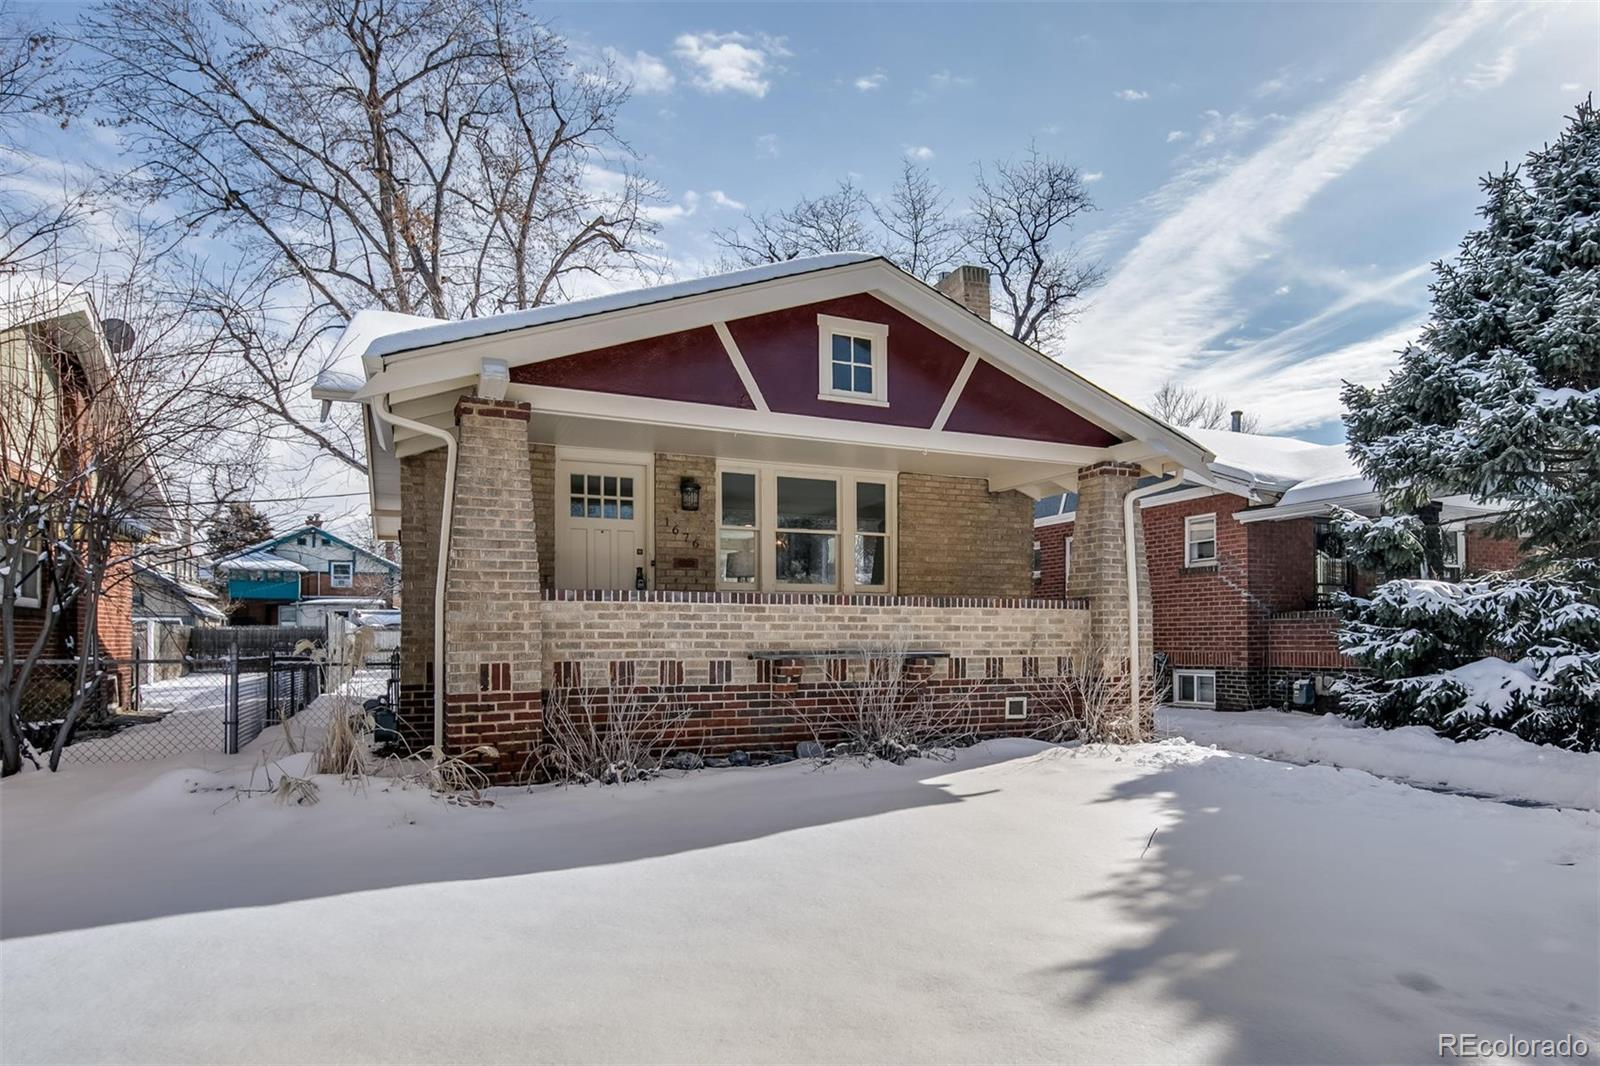 MLS# 5026749 - 2 - 1676 Garfield Street, Denver, CO 80206